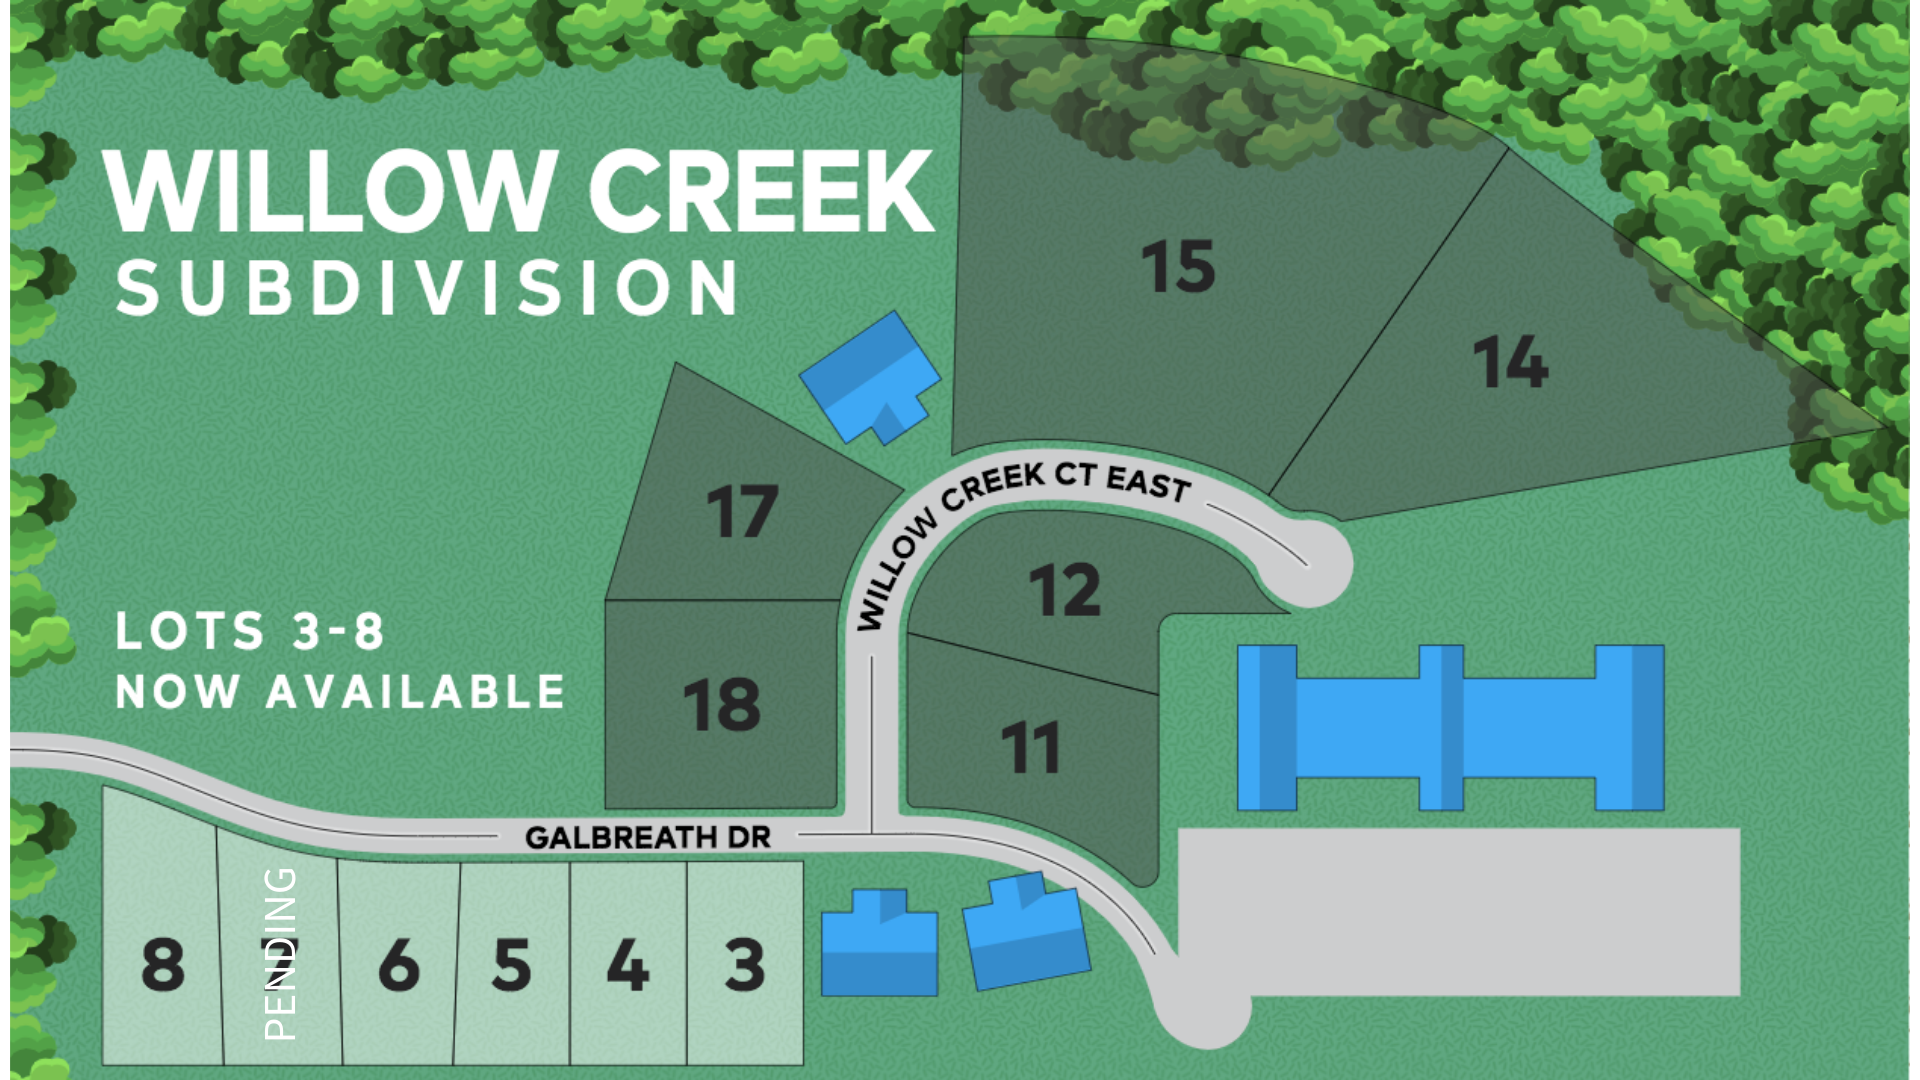 WILLOW CREEK LOT MAP WITH 7 PEND